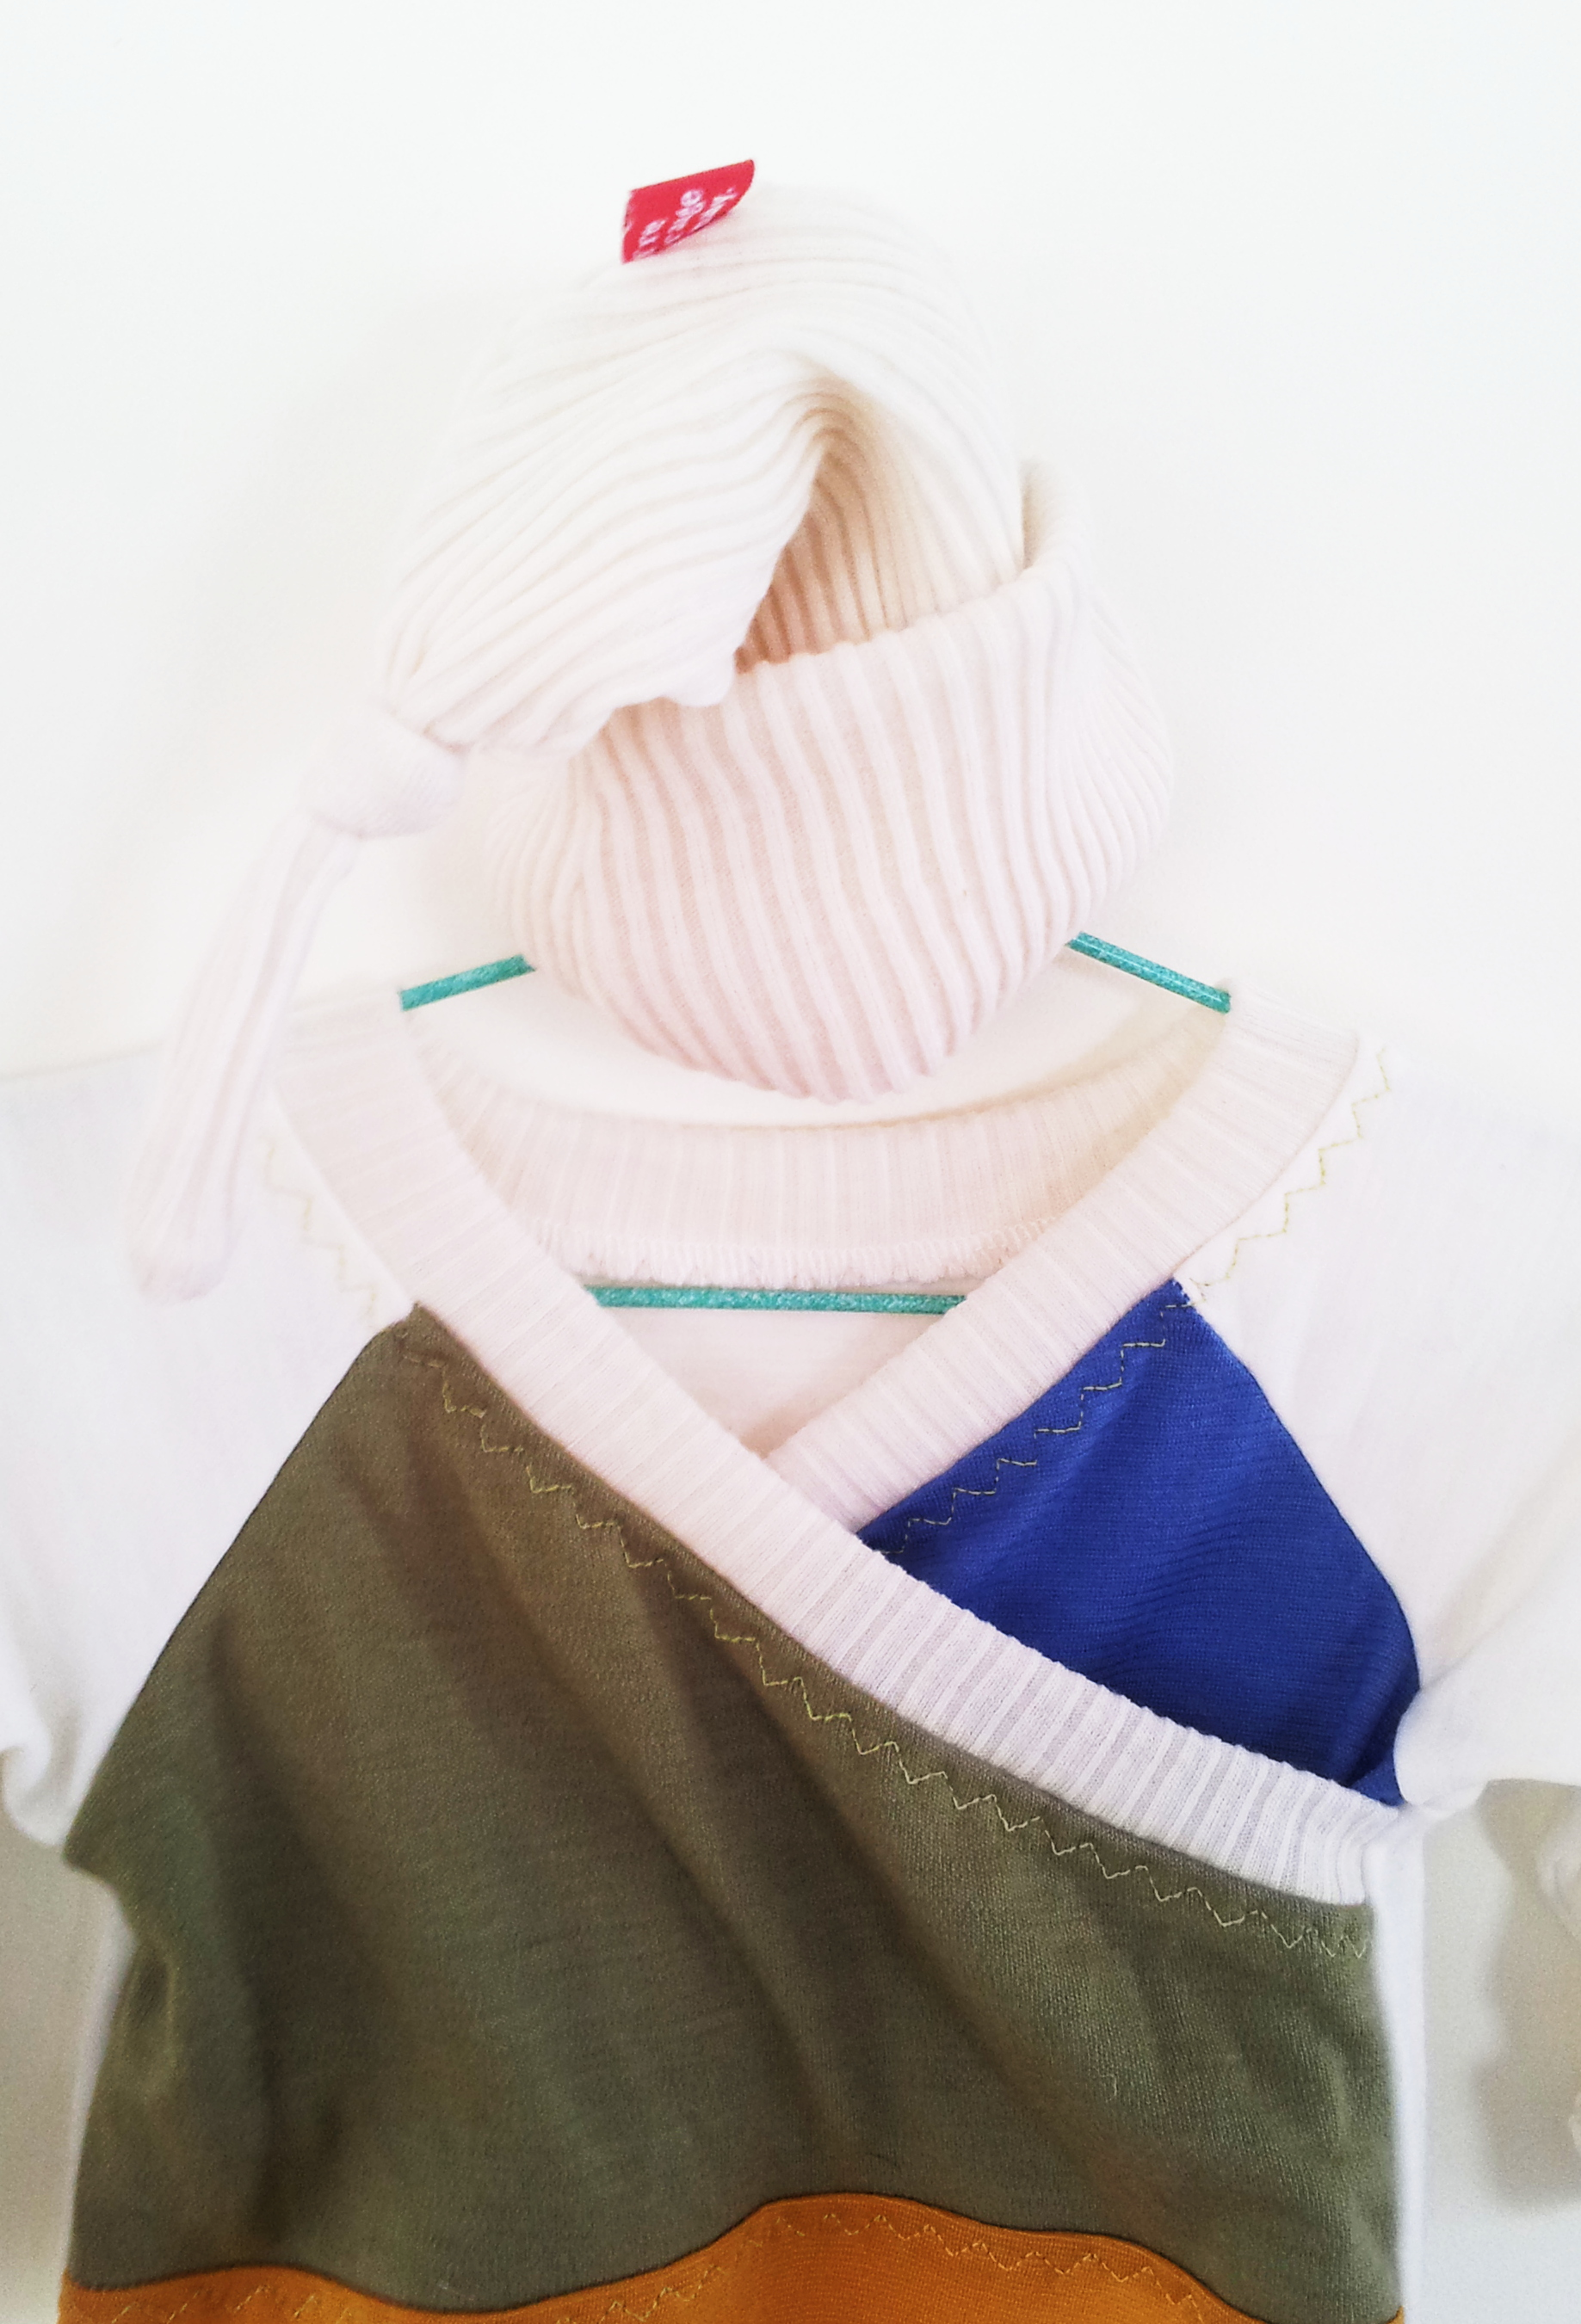 Another sleep sack, with the softest merino rib hat. I'm not normally a big fan of white for tiny spewing pooing babes, but this was just so soft and sweet.